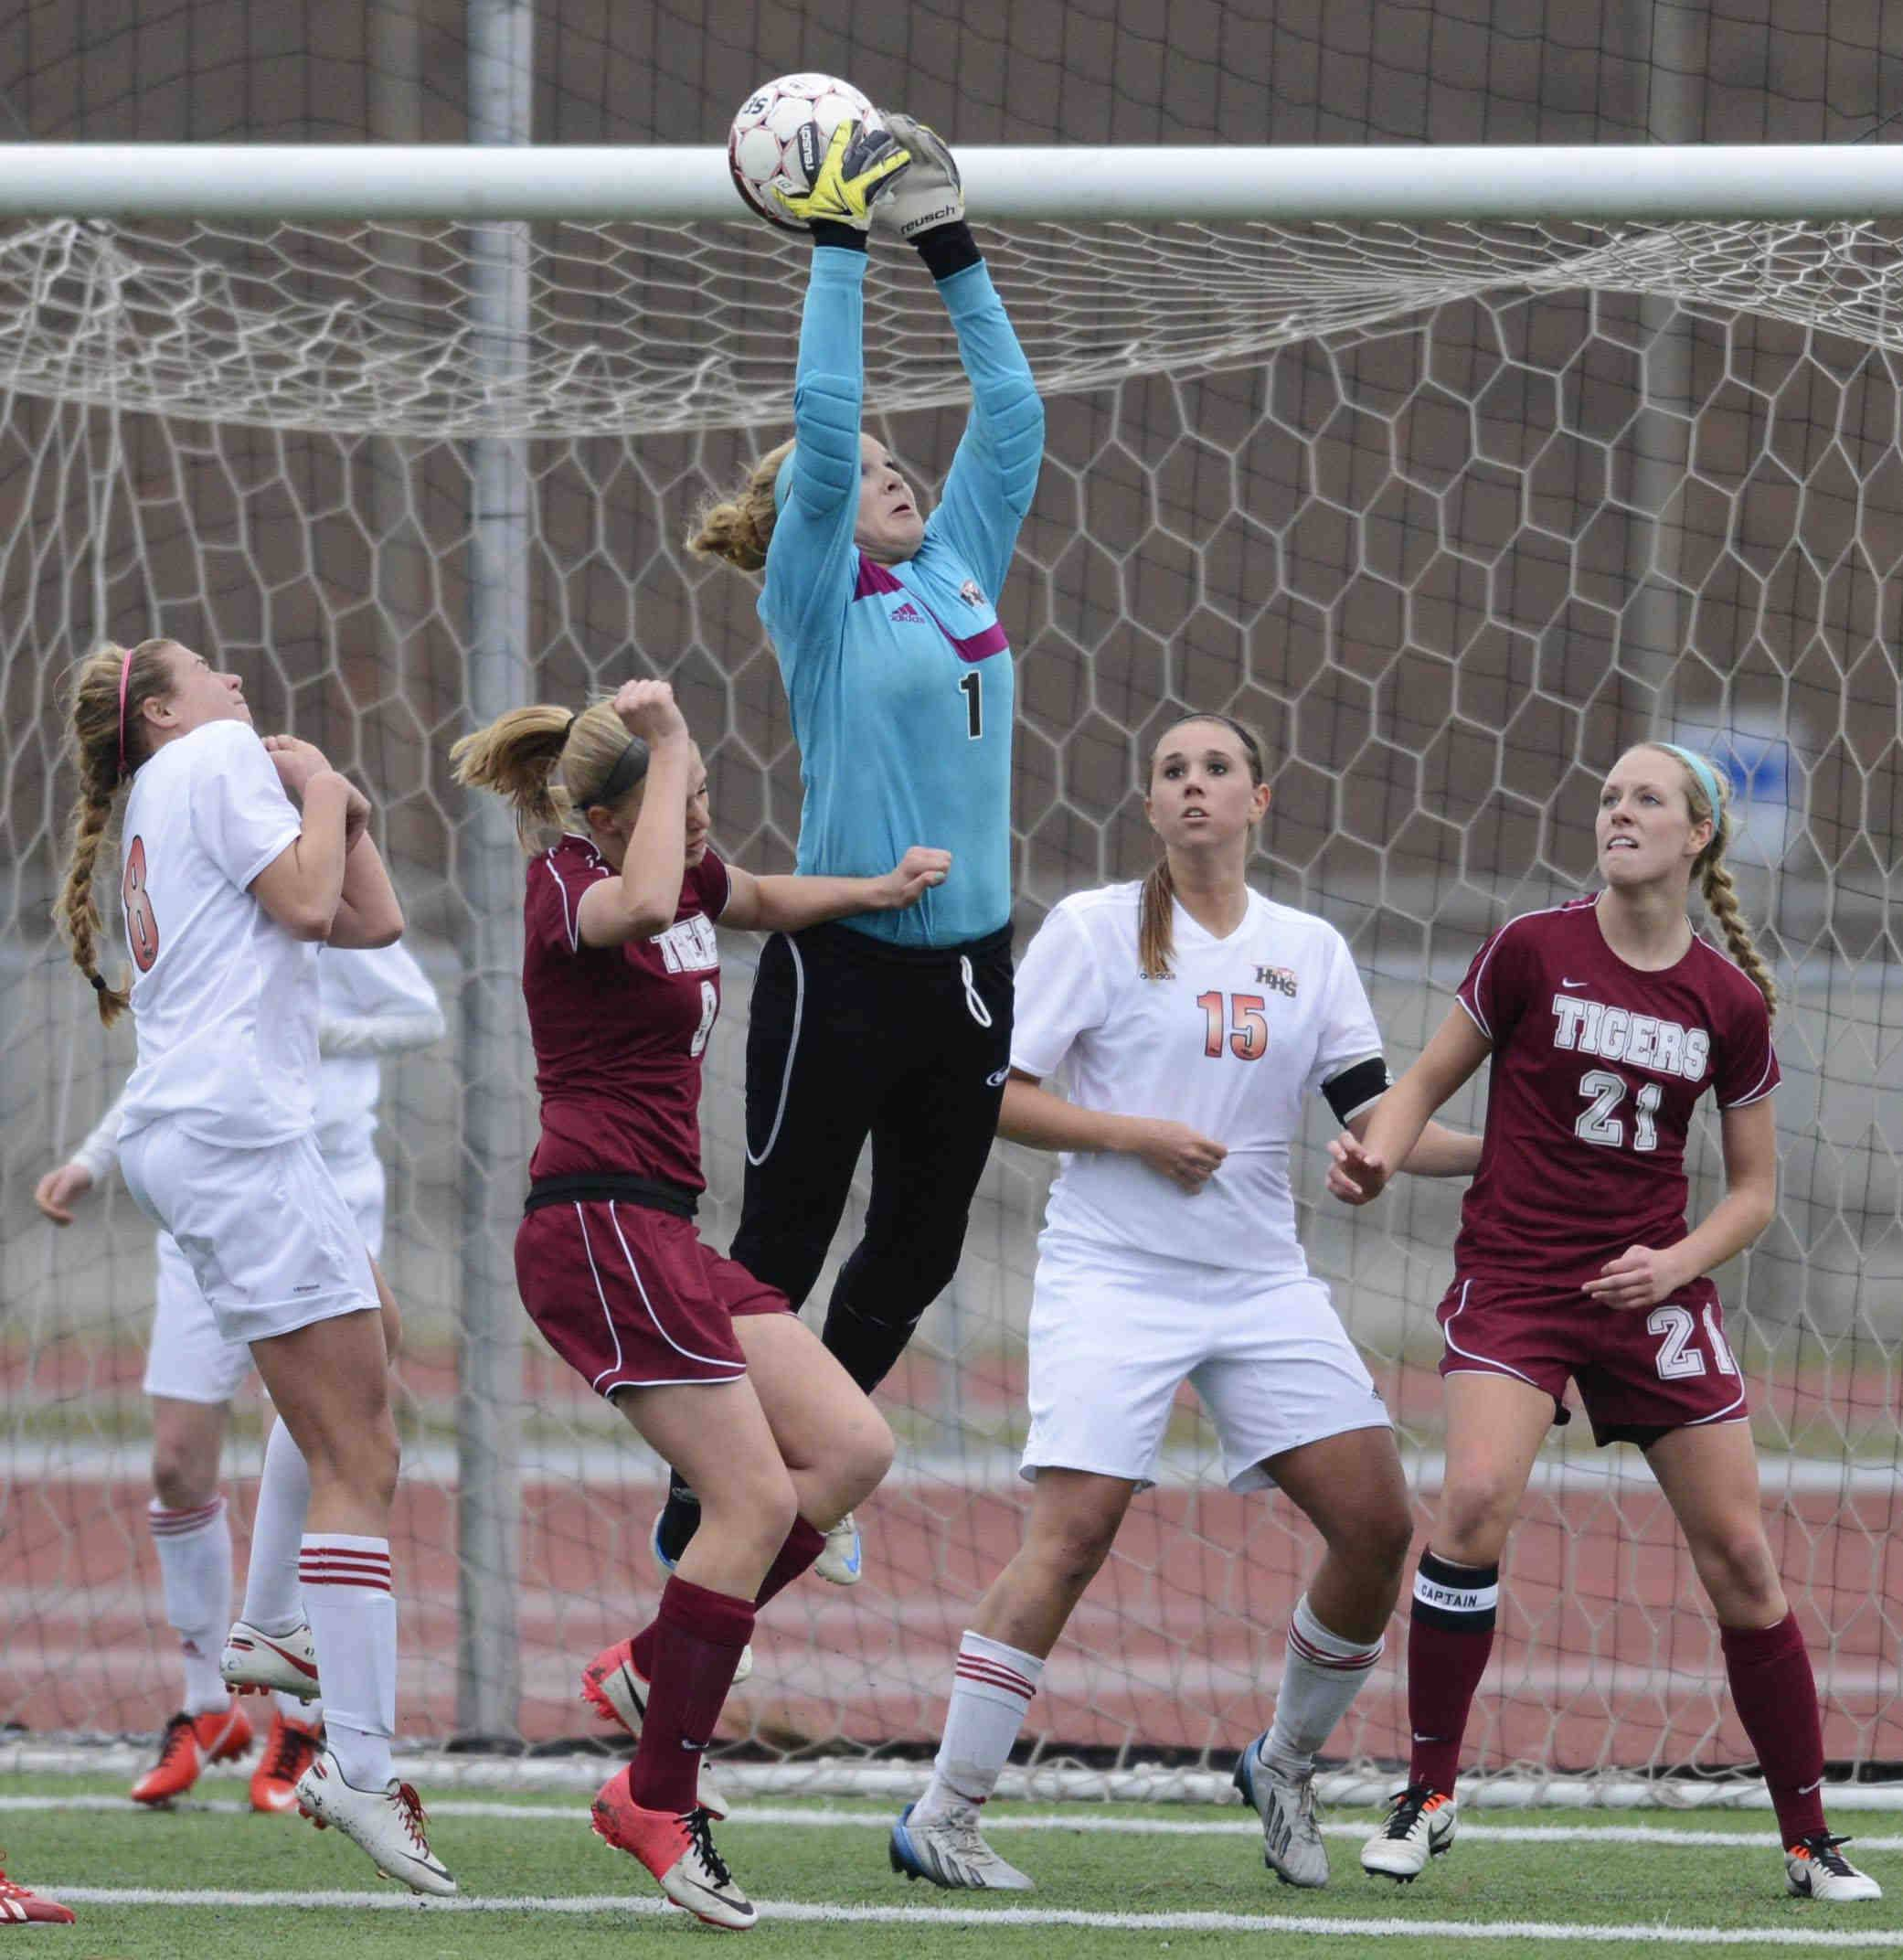 Huntley goalkeeper Jessica Galason leaps to make a save during a game last season.